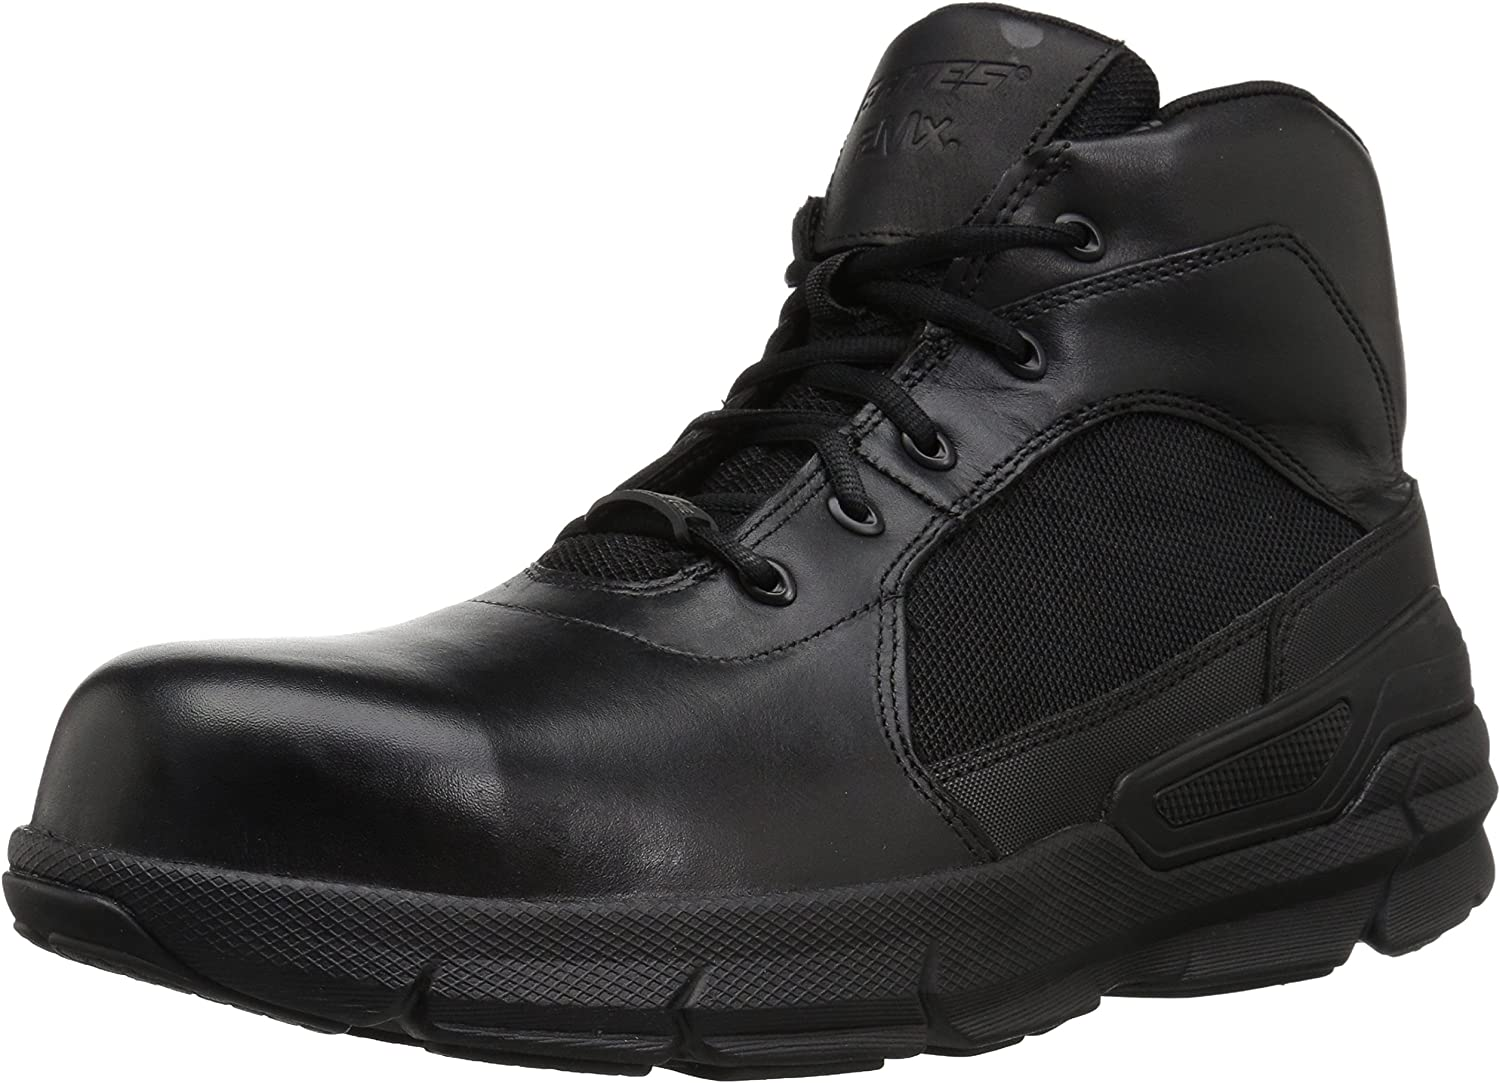 Bates Max 80% OFF Men's Charge-6 Sale item Composite Toe Side Military Tactica Zip and